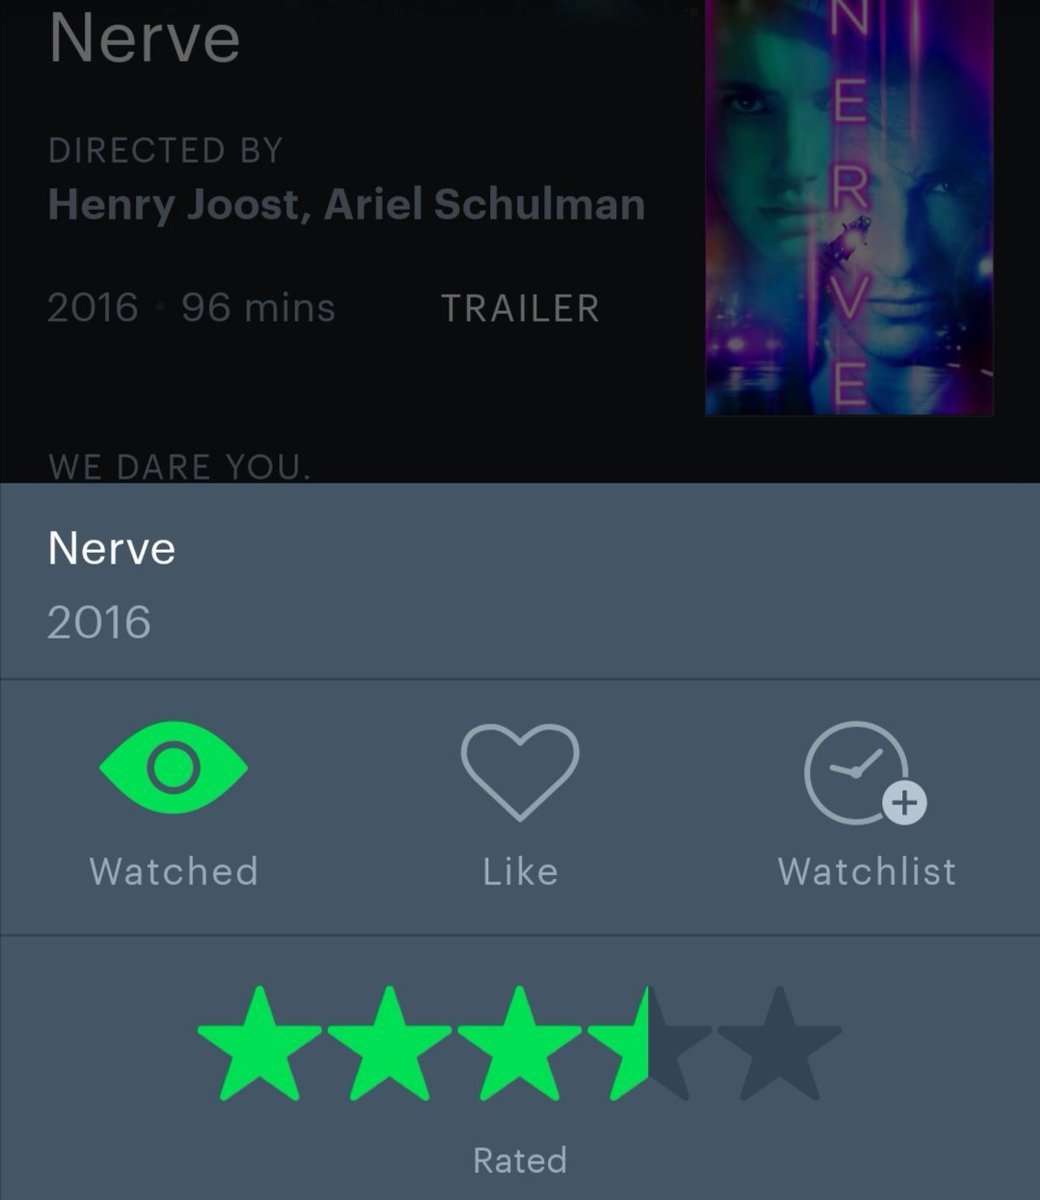 Once again it's quarantine film catch up time. #Nerve is a fun teen thriller that runs fast and plays on the world of social media and internet fame. Visually exciting and just a good time watch. @playnerve #NerveMovie #Film #FilmGeek https://t.co/smP8QGTQE7